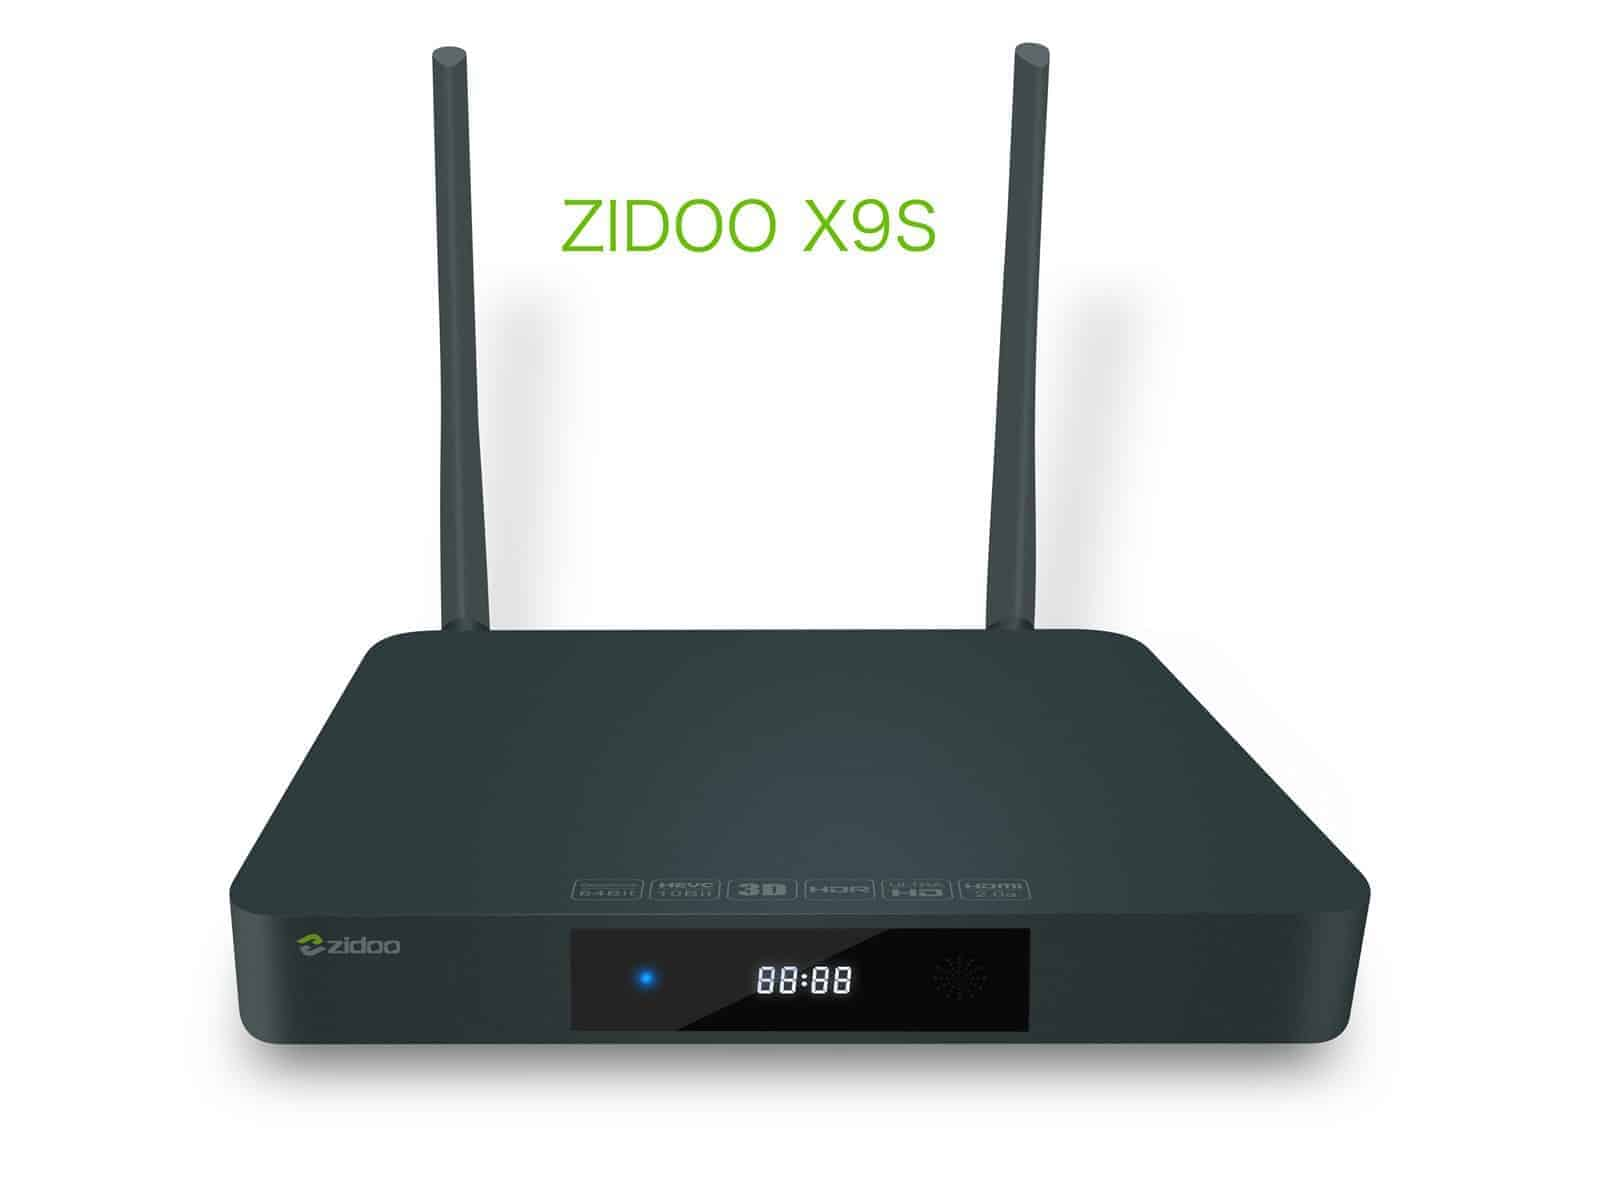 zidoo x8  Zidoo X9S and X8 - The Streaming Blog